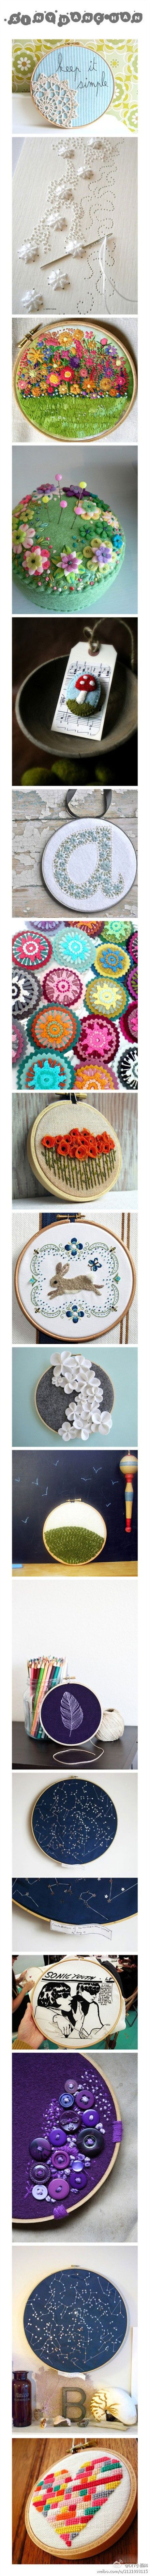 Crafty Ideas / Needle crafts